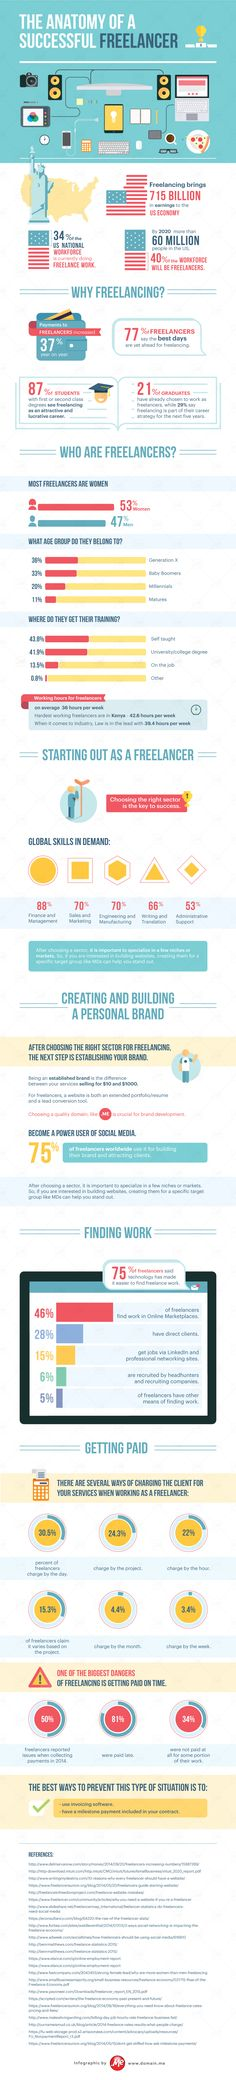 The Anatomy of a Successful Freelancer #infographic #Freelancing #Career